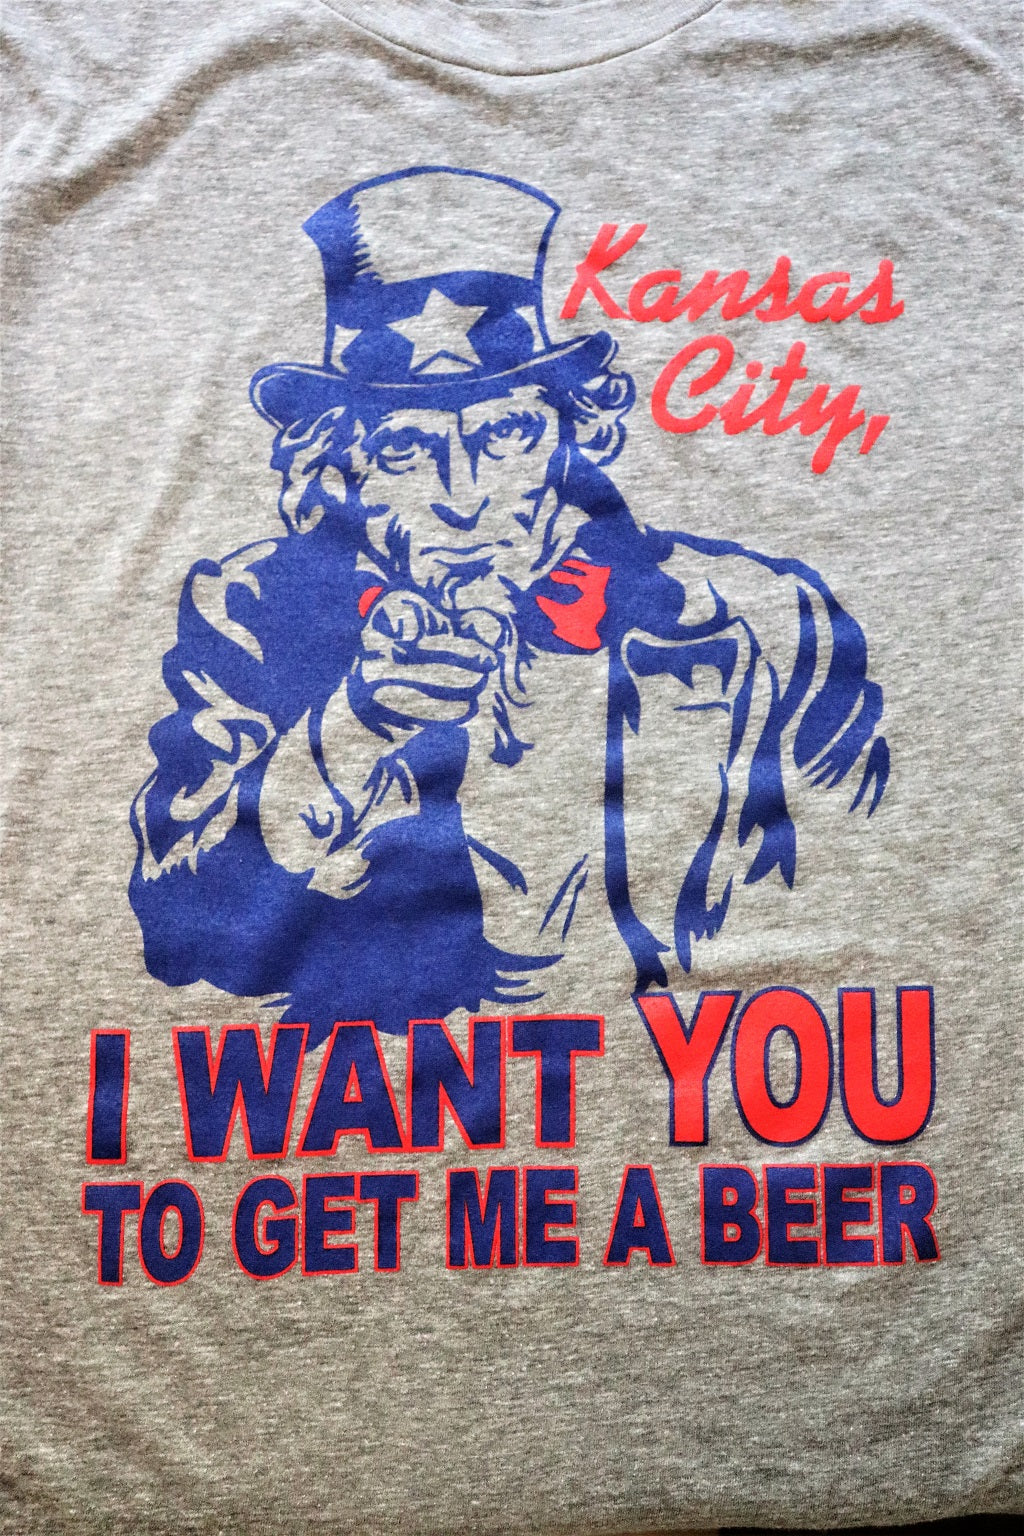 KC I Want You! To get me a beer! - KC Shirts